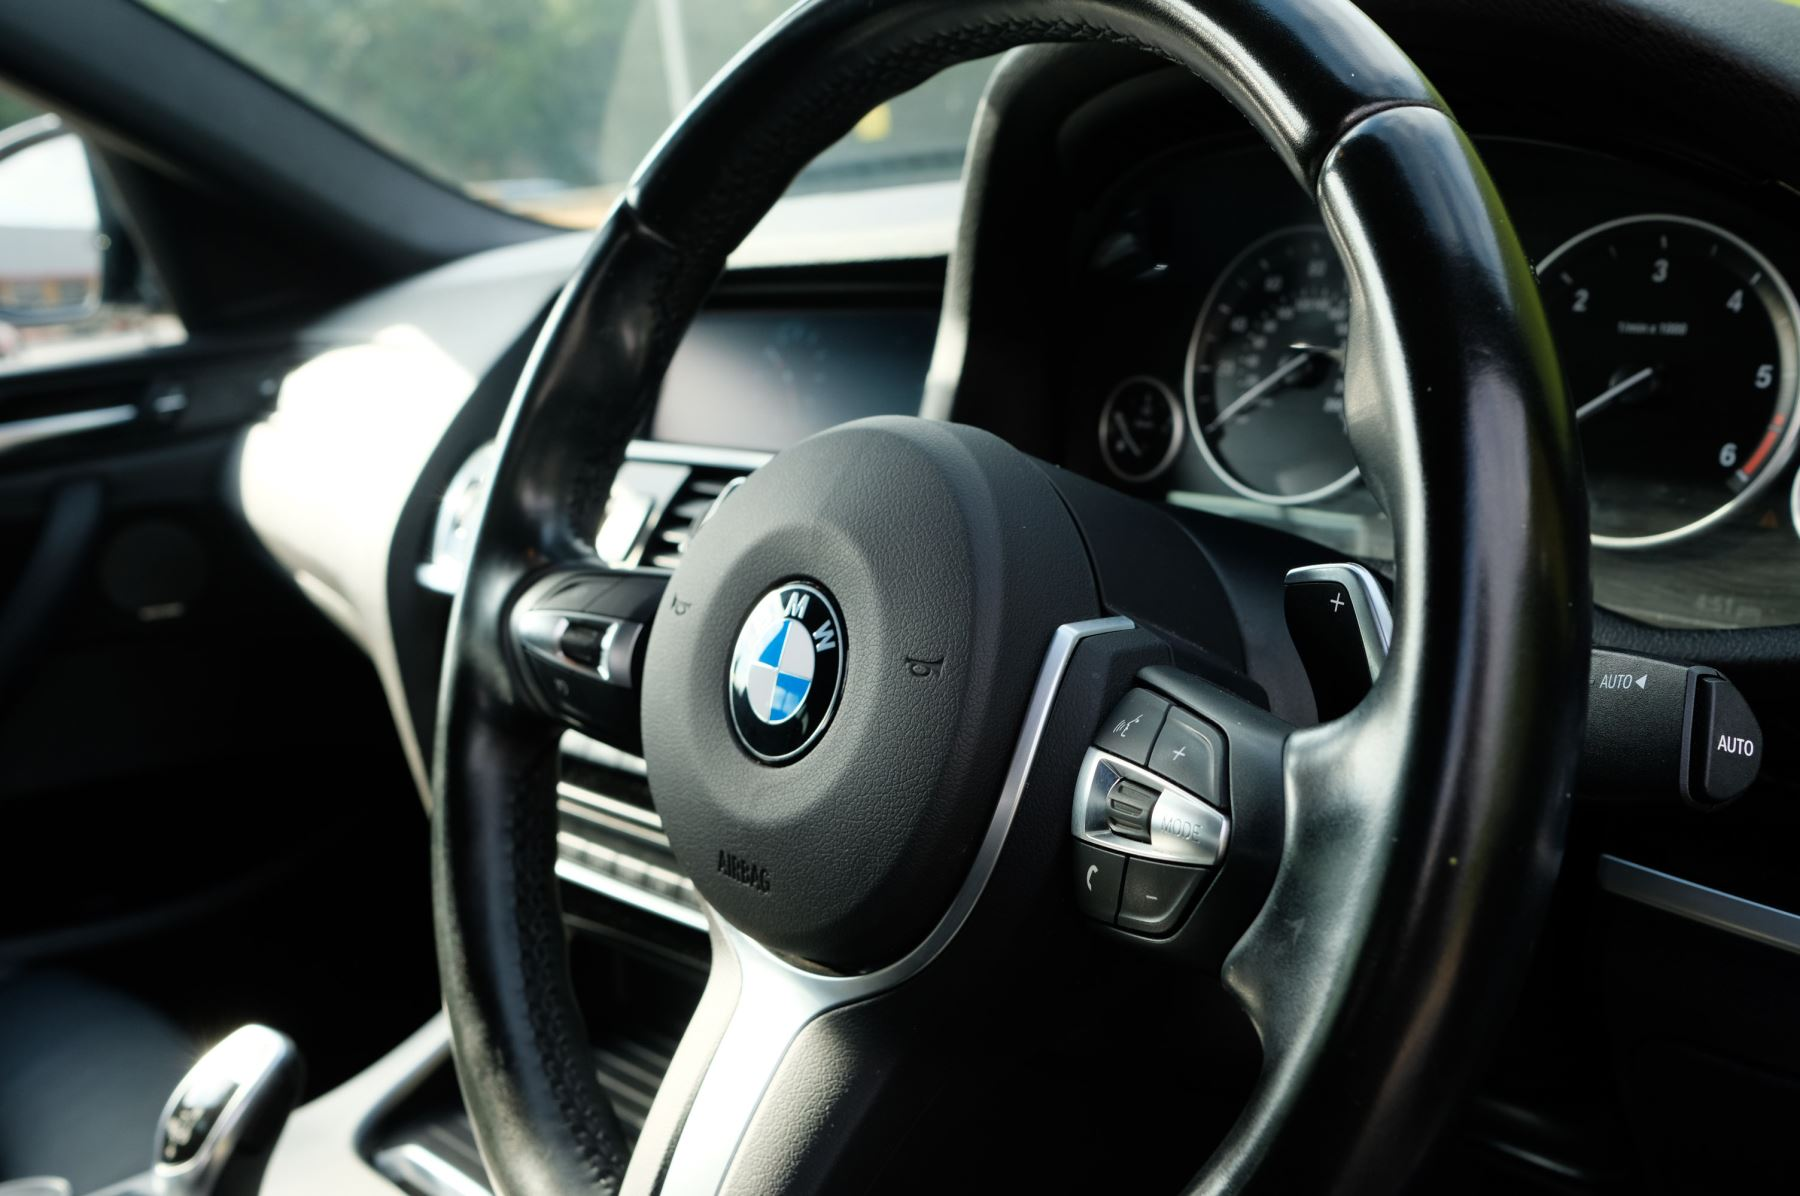 BMW X4 xDrive30d M Sport 5dr Step - M Sport Plus Package - Interior Comfort Package - Elec Glass Sunroof -  image 11